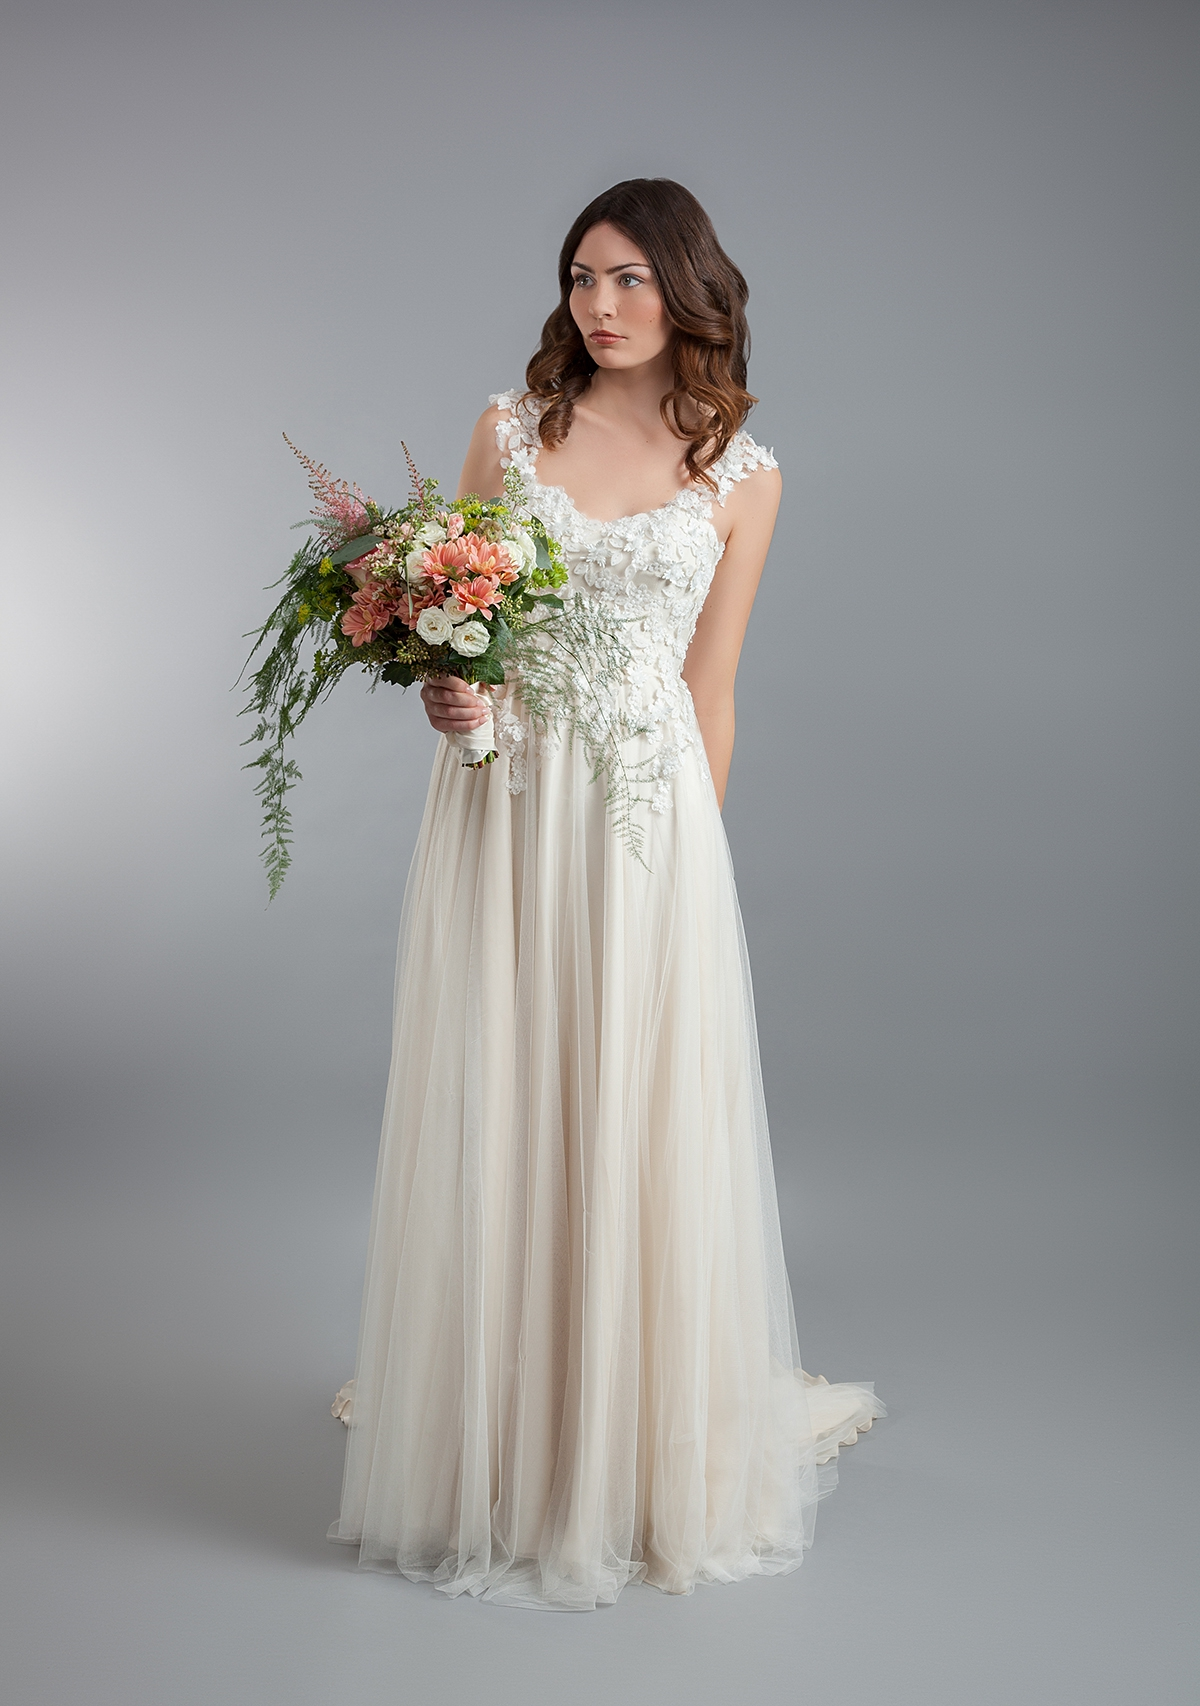 Introducing Shanna Melville Bridal Couture – Timeless & Elegant Made To Measure Wedding Dresses (Bridal Fashion Fashion & Beauty Get Inspired )